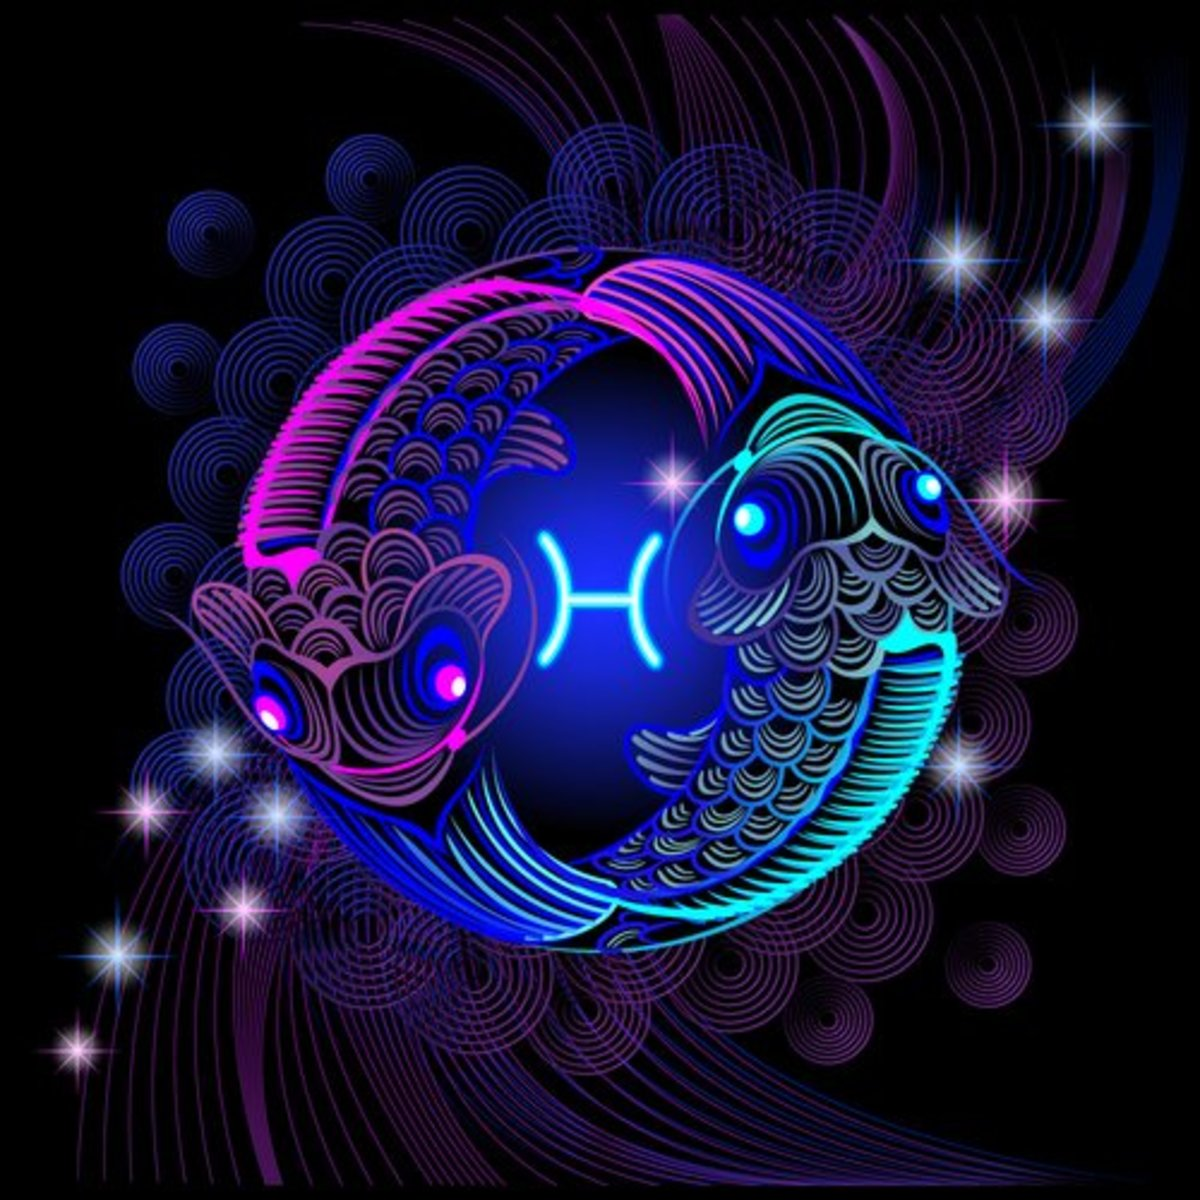 Pisces rides a cosmic wave infused with psychic abilities.